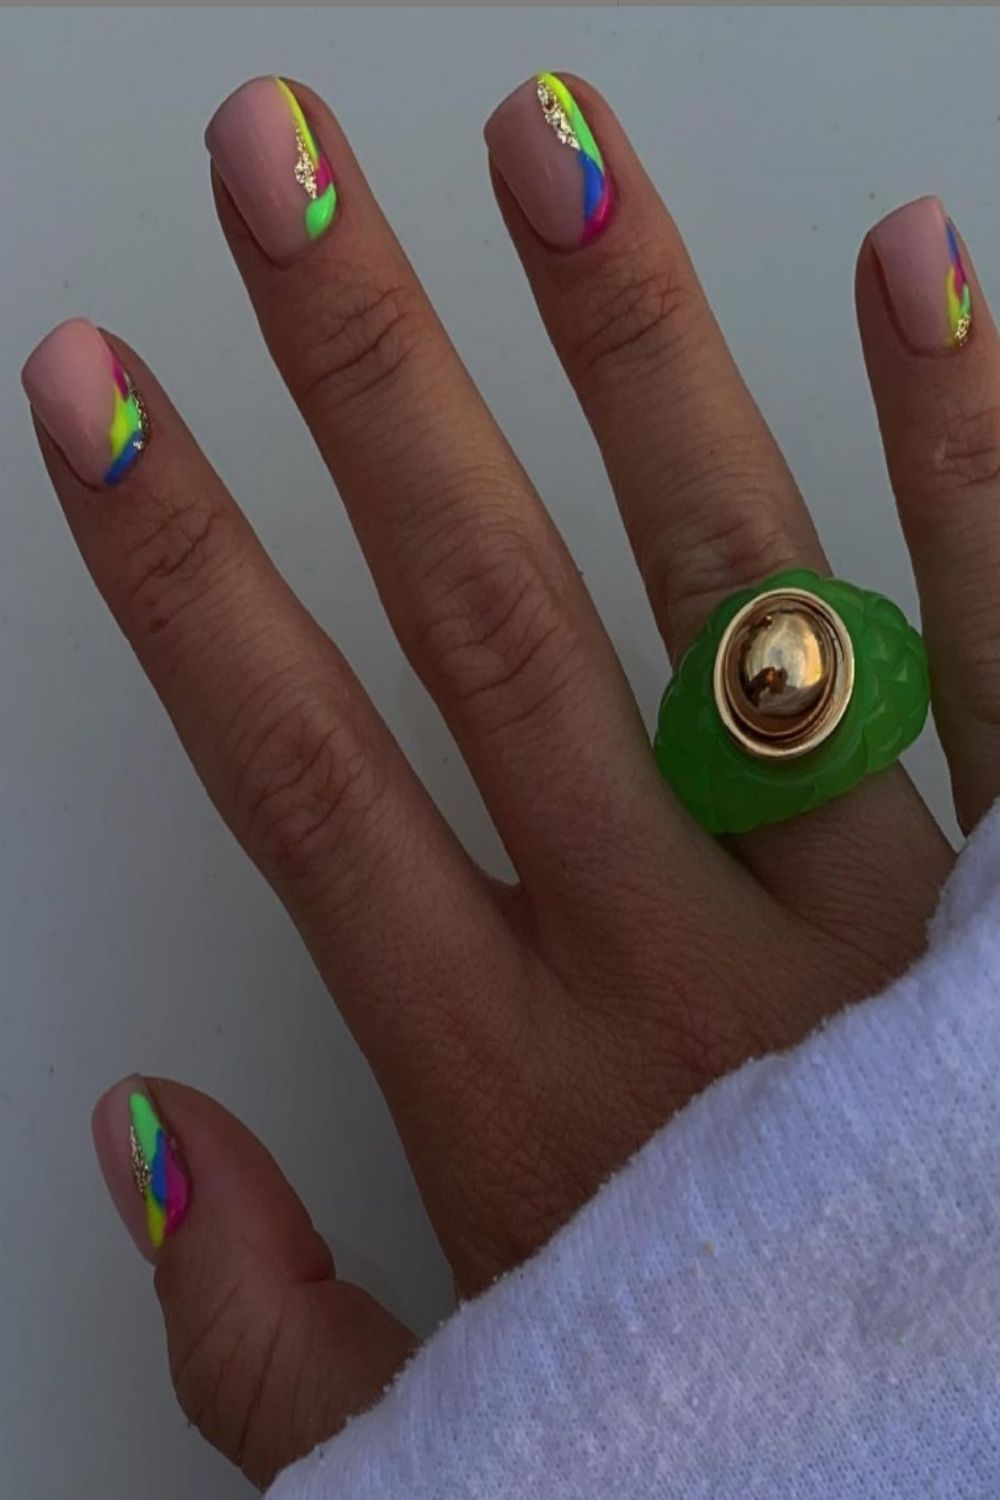 Cute nail colors ideas for summer 2021 color trends!